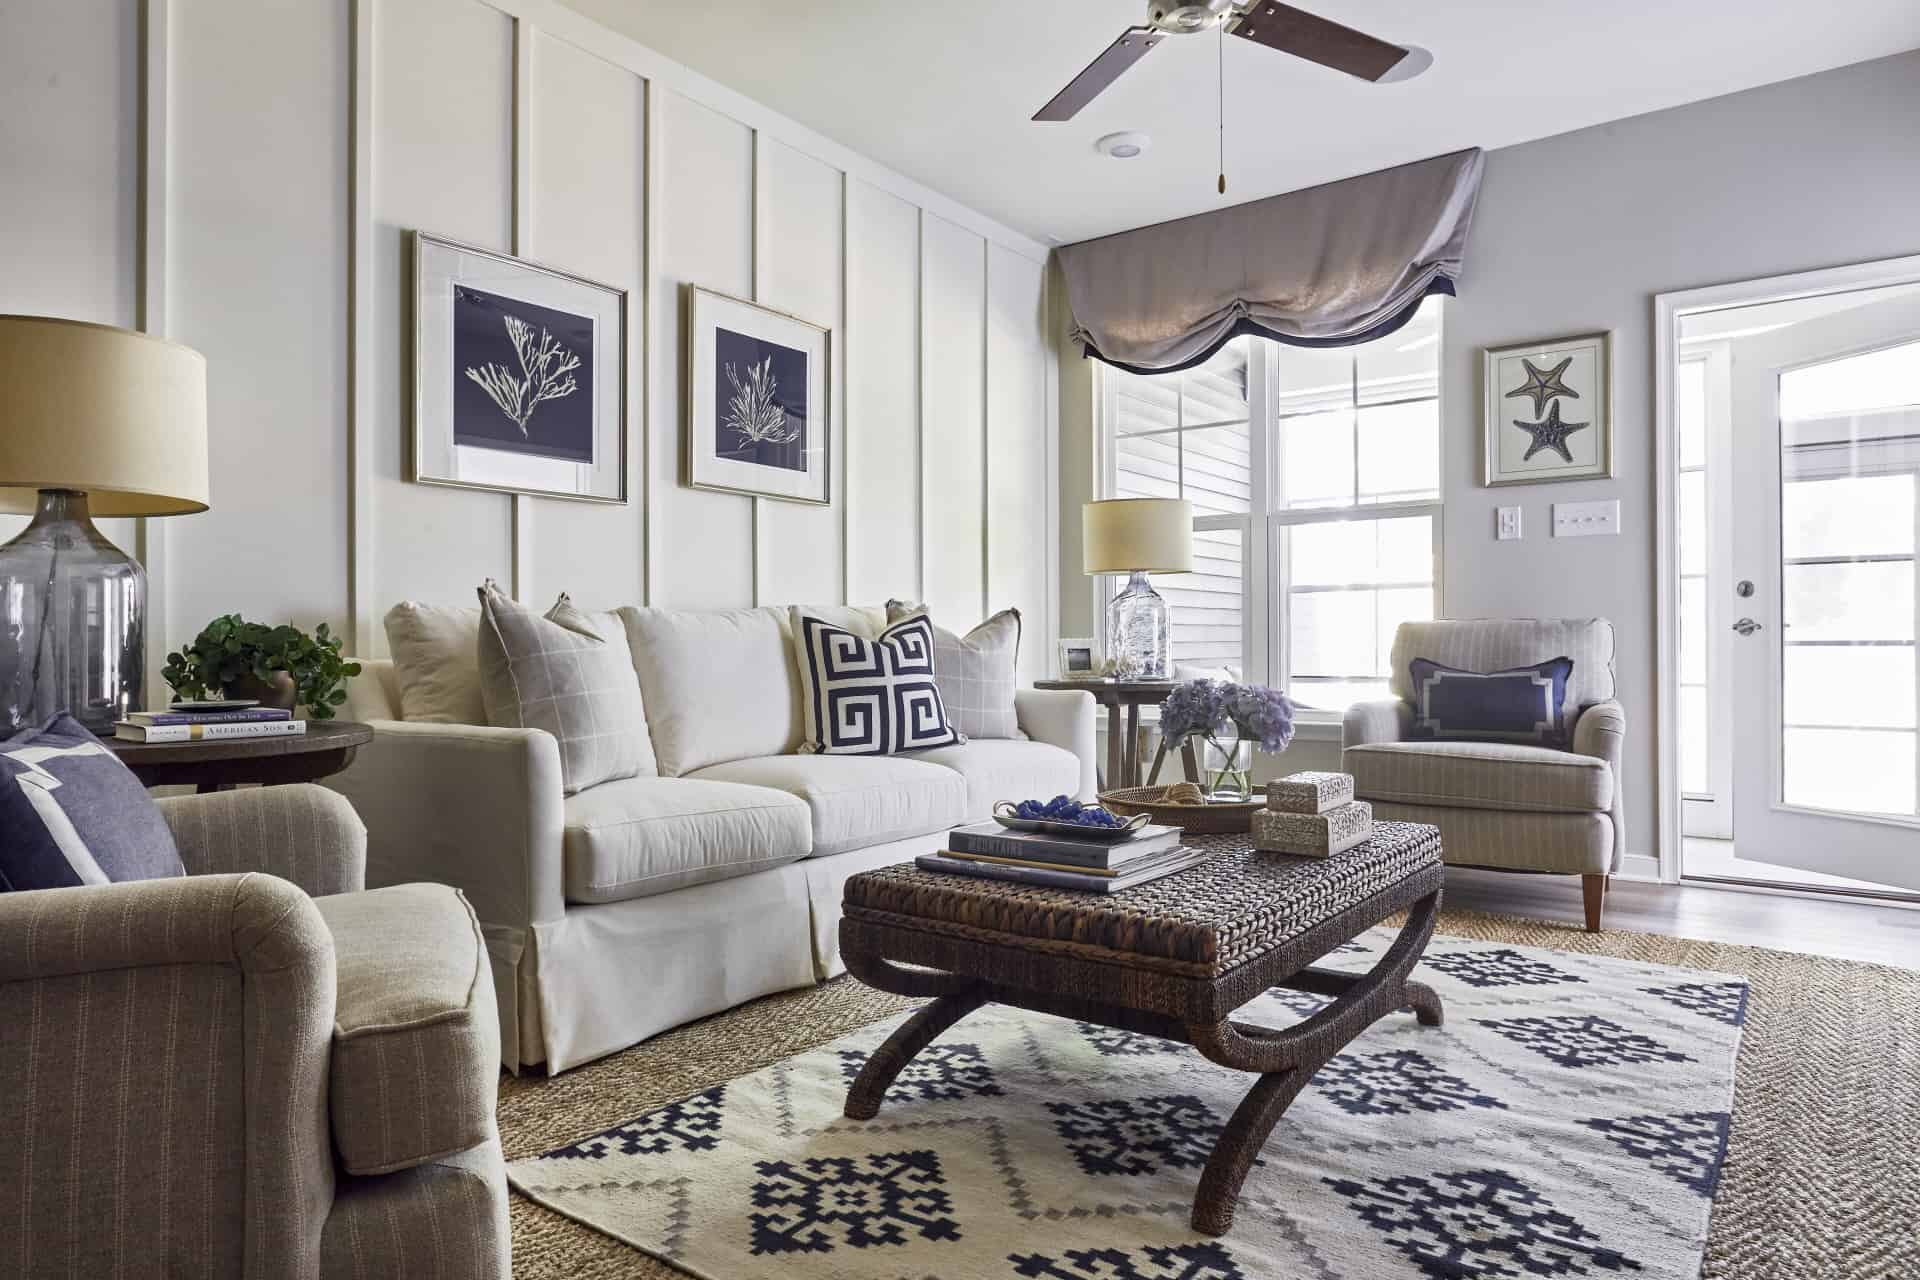 65 - StyleCraft Homes - Townes at Notting Place Parade of Homes